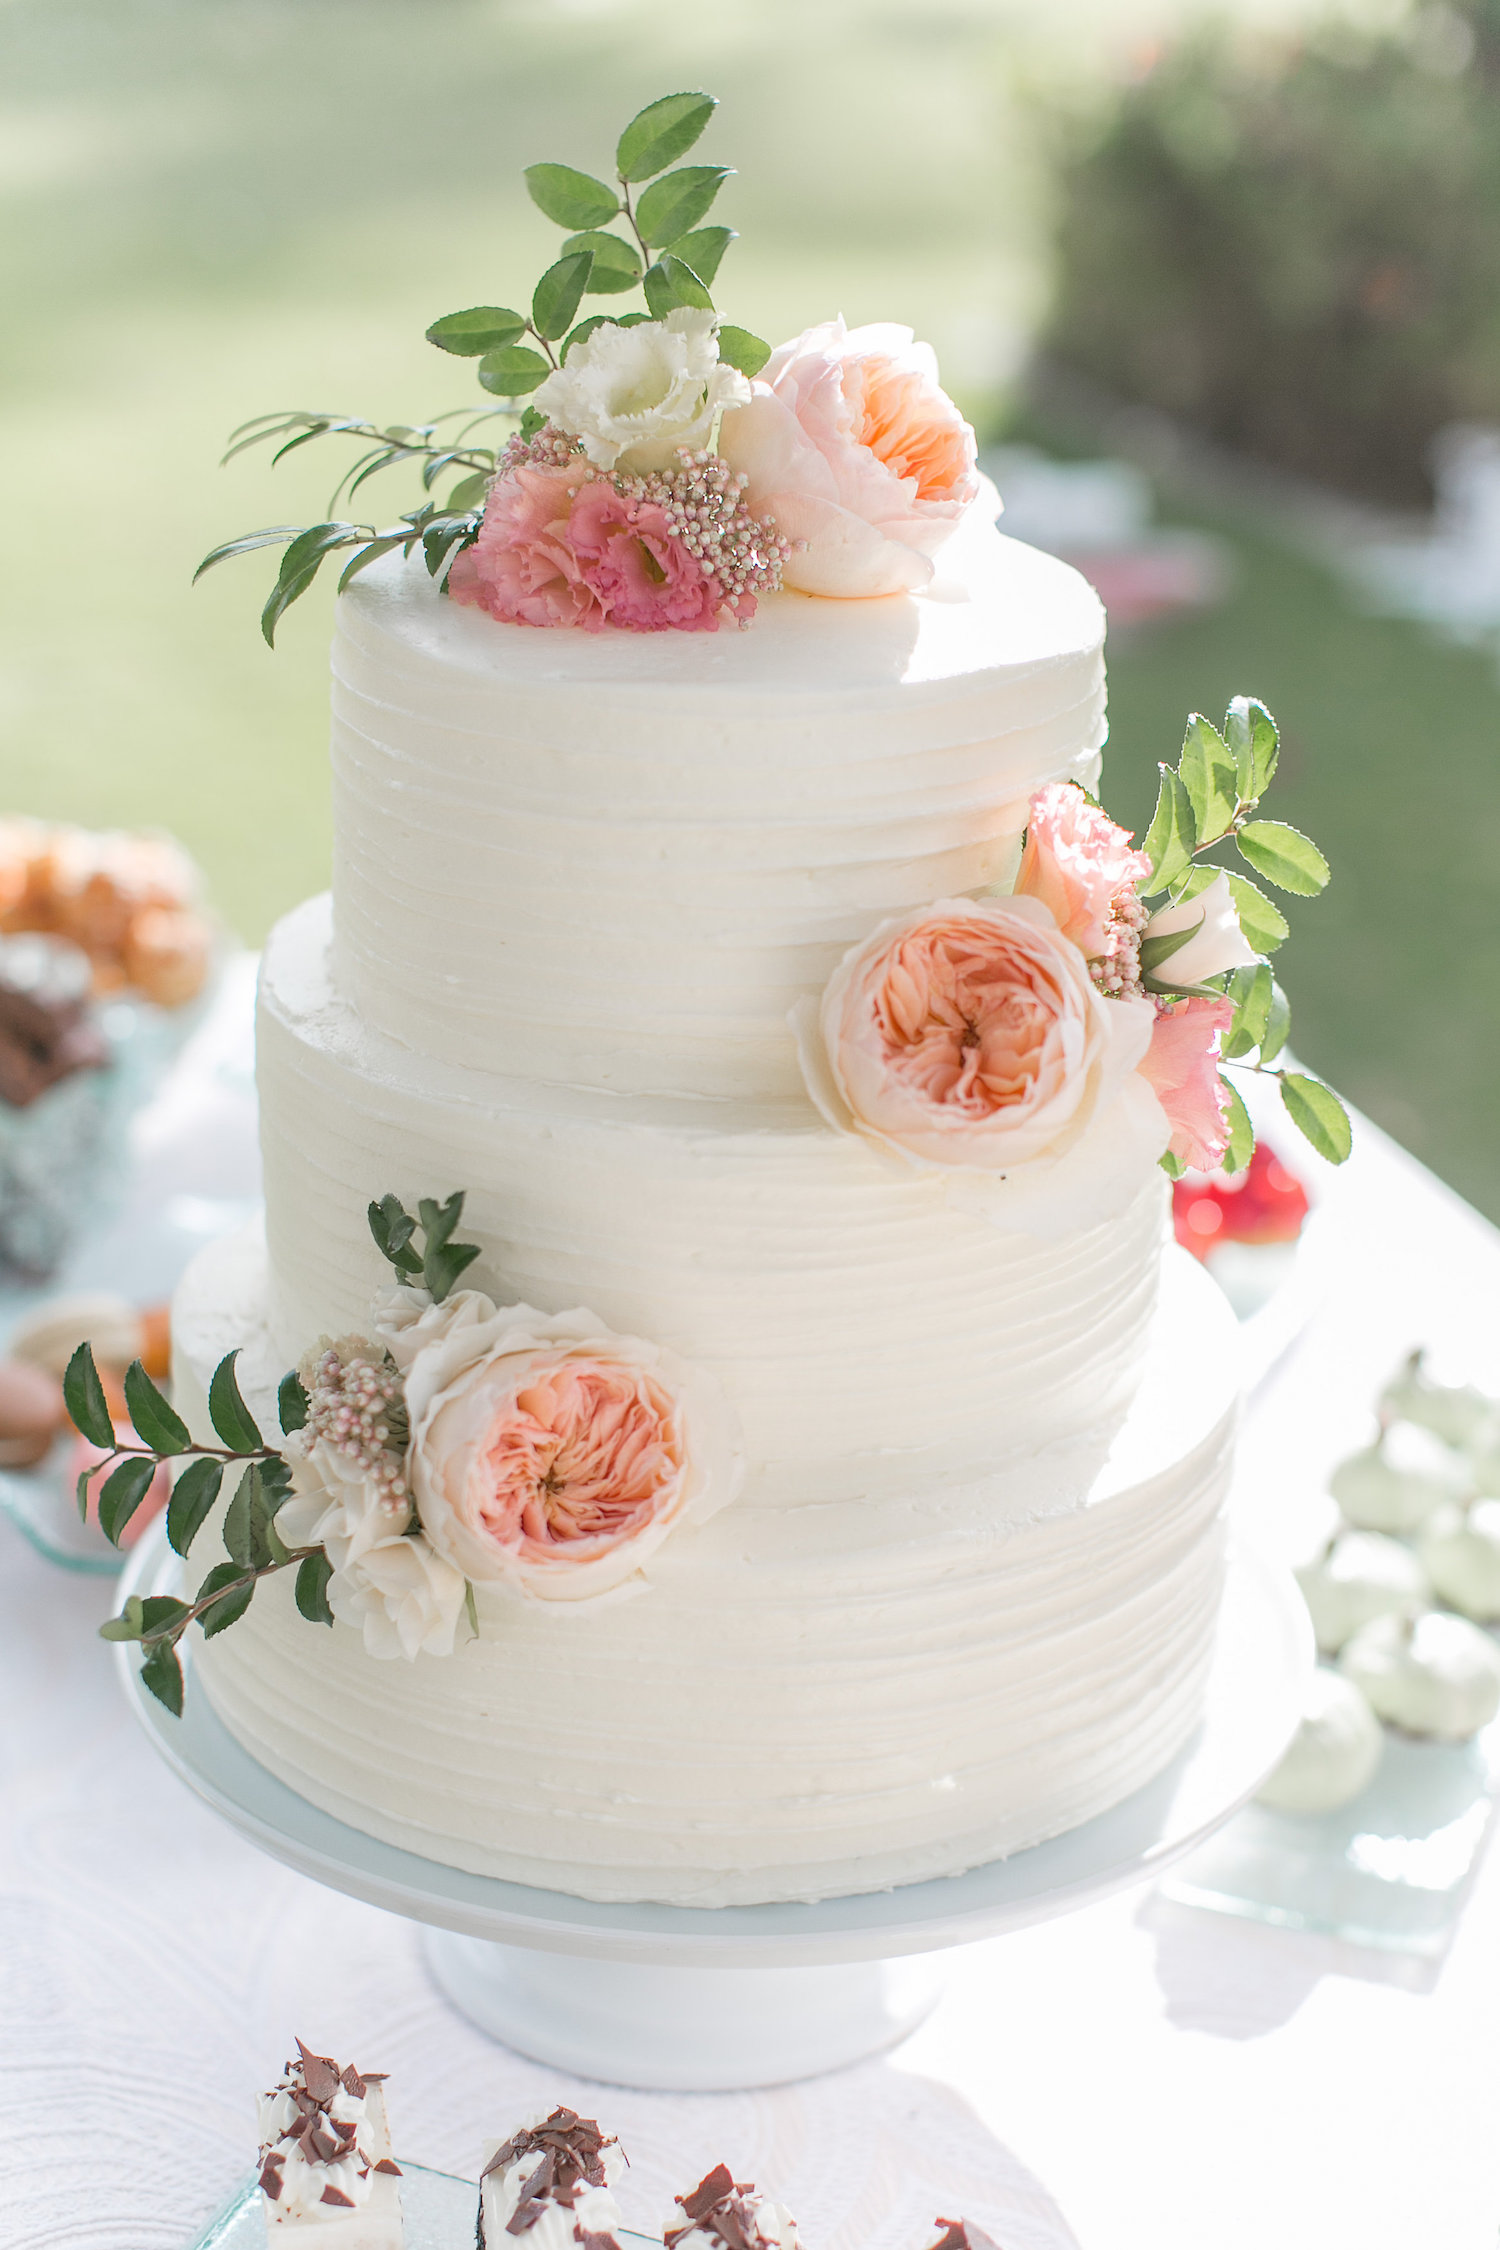 Peach & pink floral wedding cake decorated by San Diego Florist, Compass Floral.